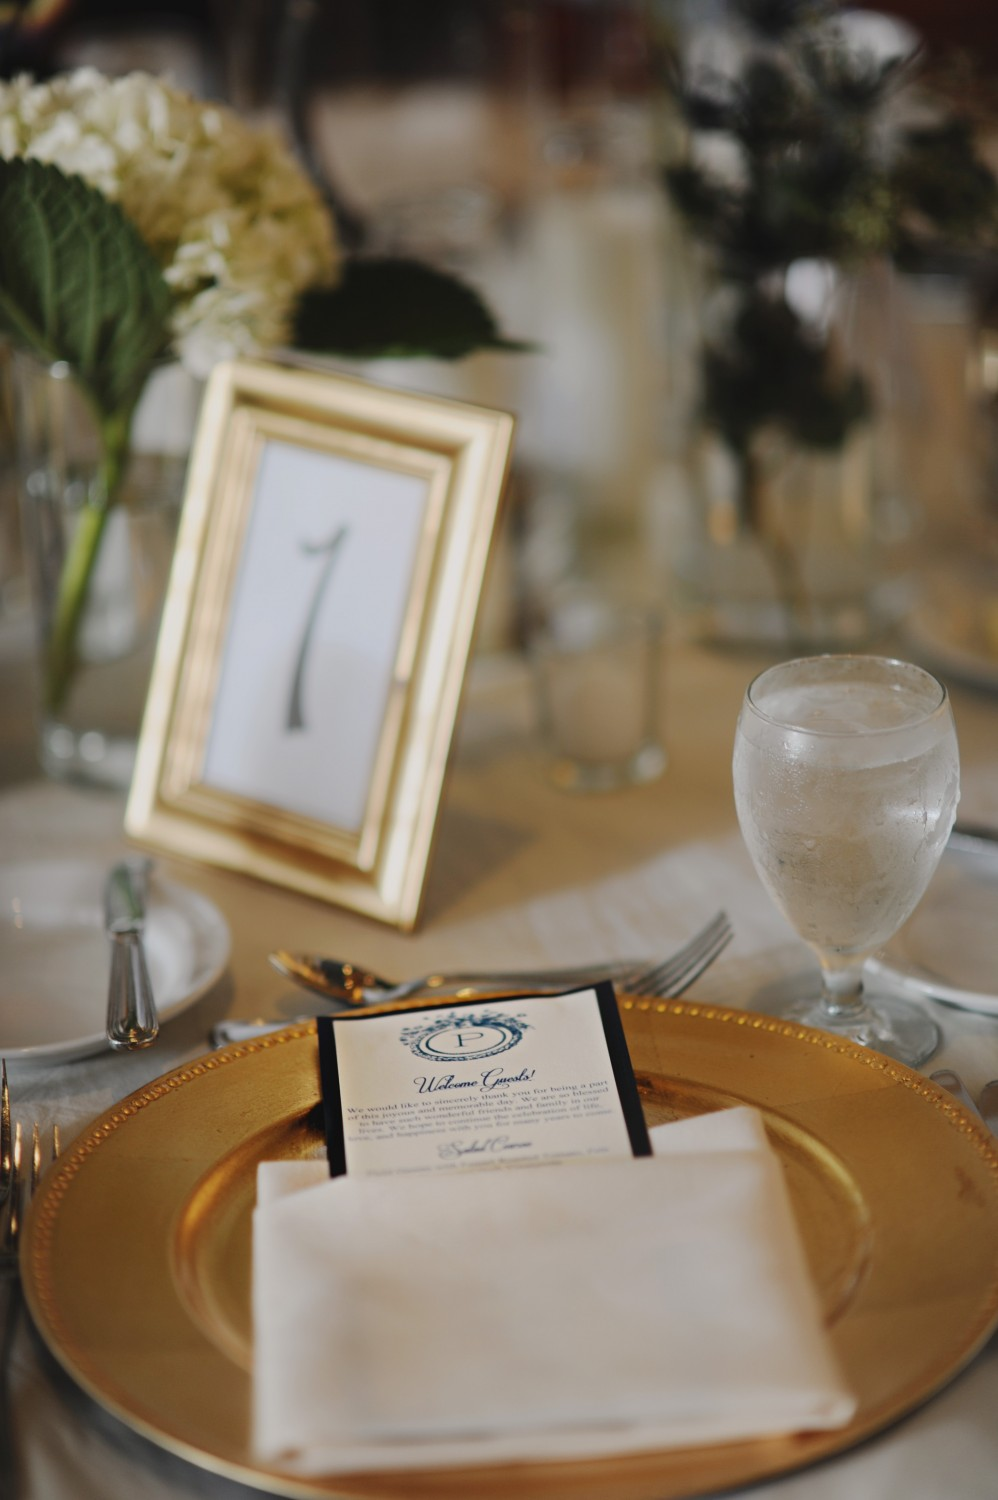 Gold Charger Place Setting & Gold Charger Place Setting - Elizabeth Anne Designs: The Wedding Blog